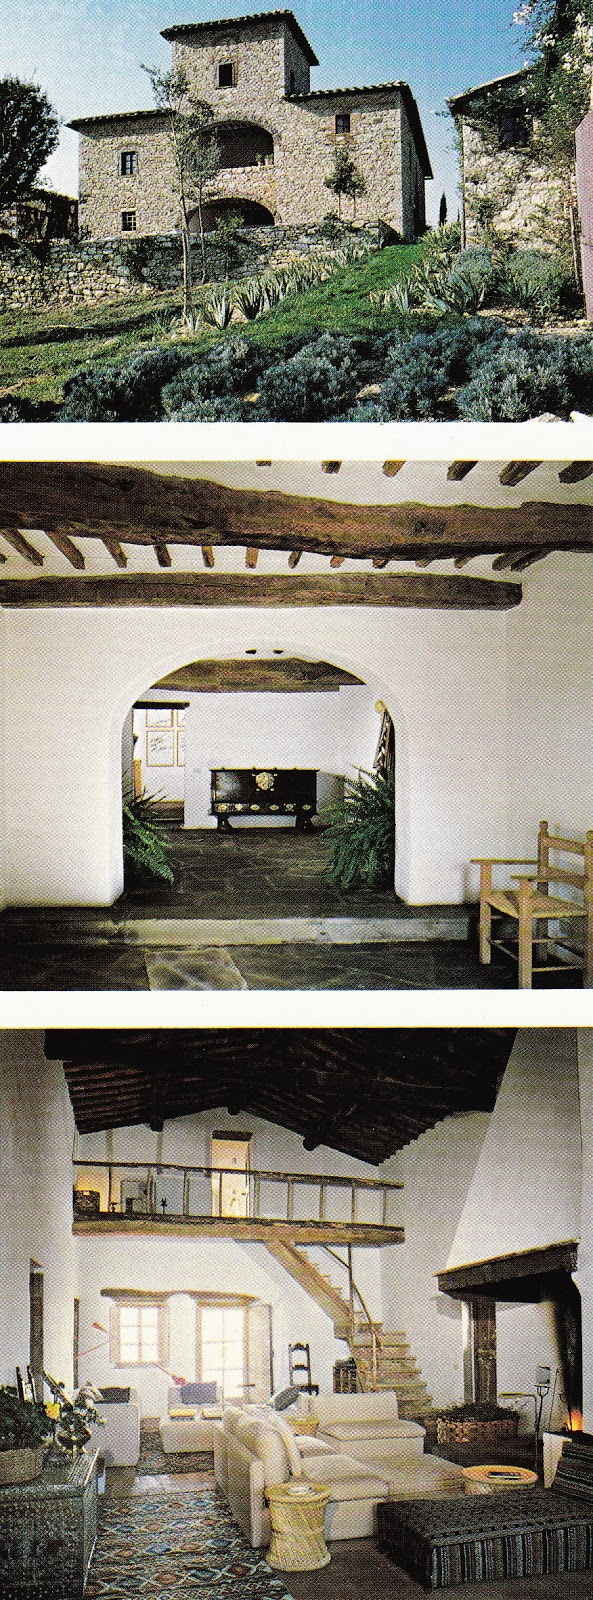 The Tuscany retreat of artist Teddy Millington Drake and interior designer John Stefanidis as featured in Architectural Digest, October, 1979. Photos by Pascal Hinous.